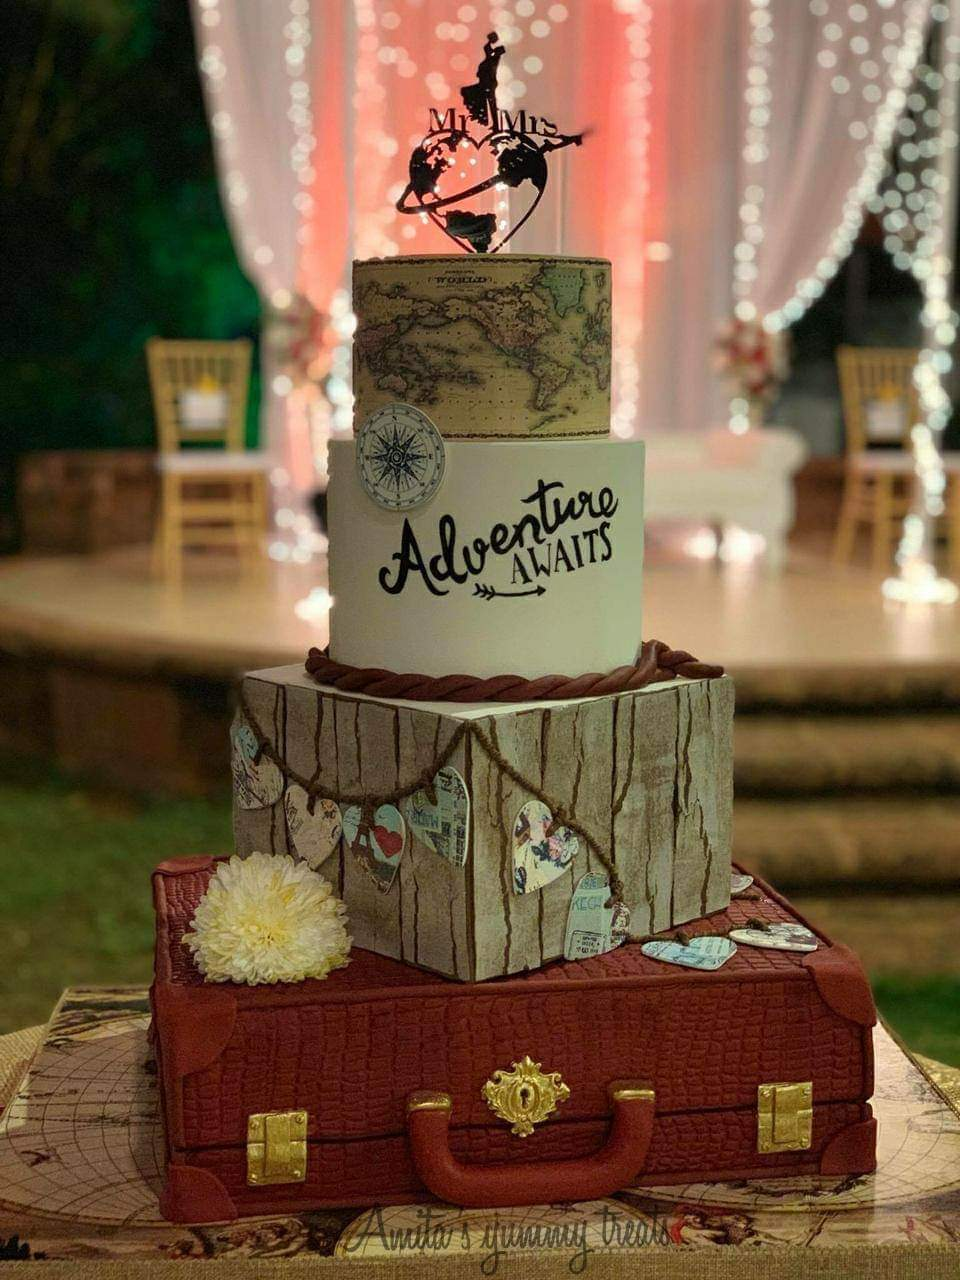 Suitcase shaped traveling fondant cake